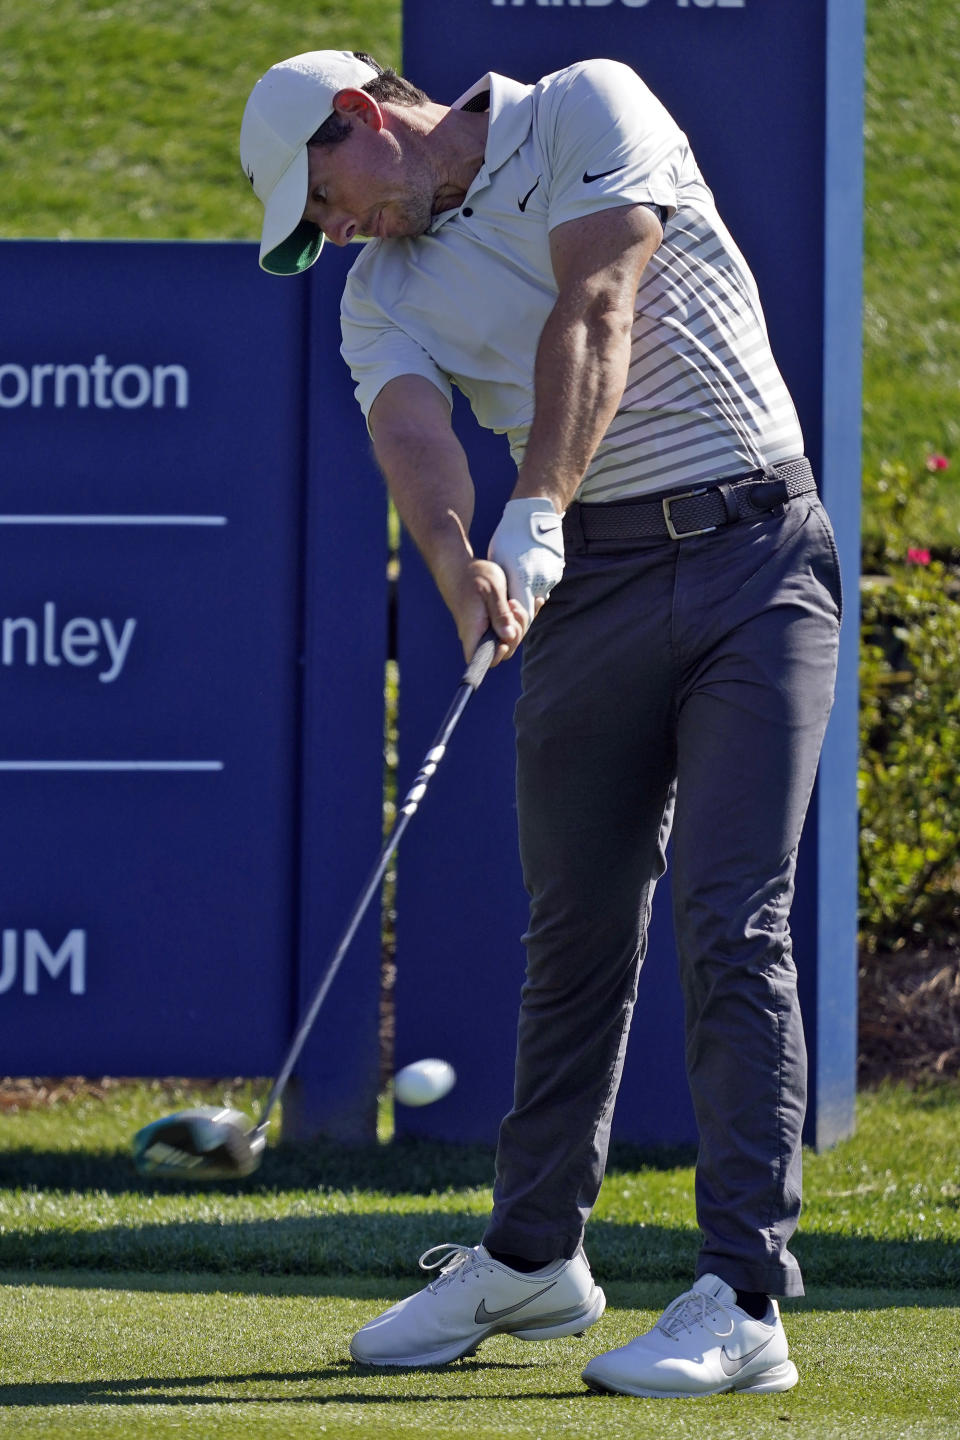 Rory McIlroy, of Nothern Ireland, tees off on the 18th hole during a practice round for The Players Championship golf tournament Wednesday, March 10, 2021, in Ponte Vedra Beach, Fla. (AP Photo/Chris O'Meara)